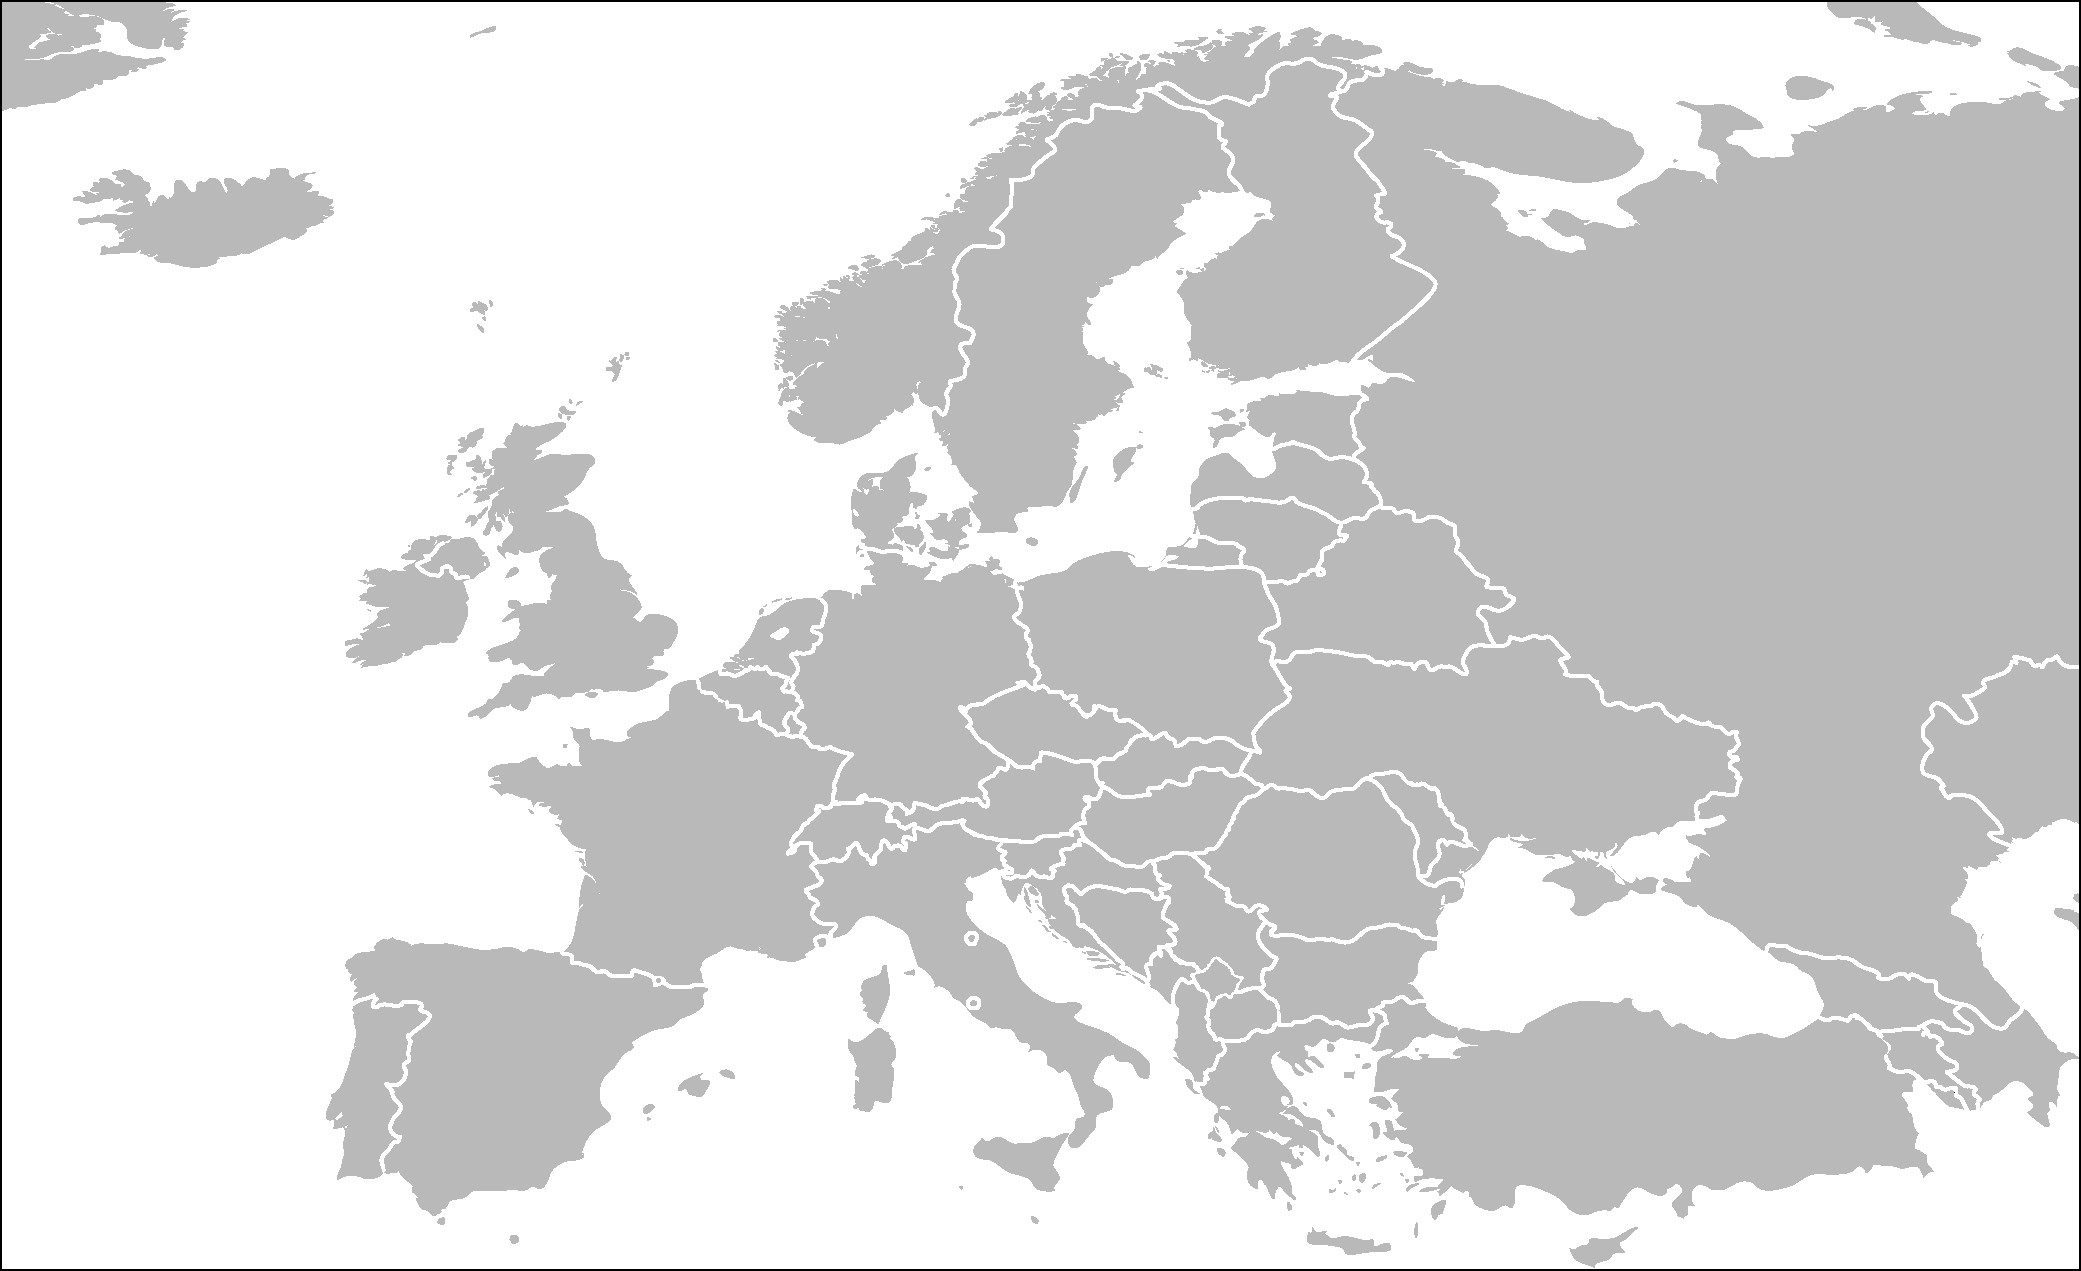 map of europe in 1914. blank map of europe 1920